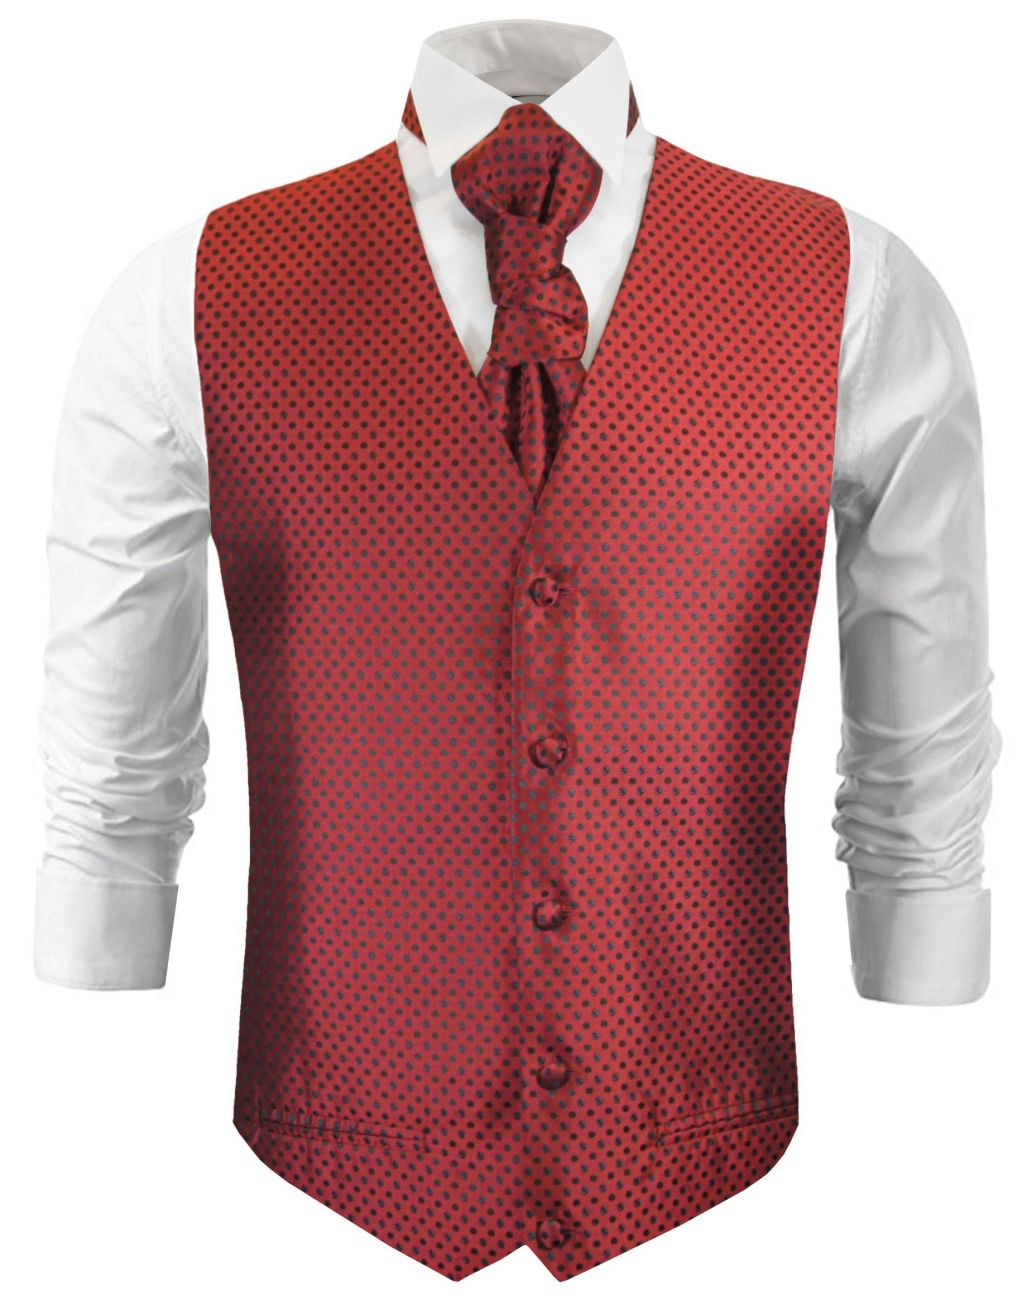 Red black dotted wedding vest waistcoat with cravat